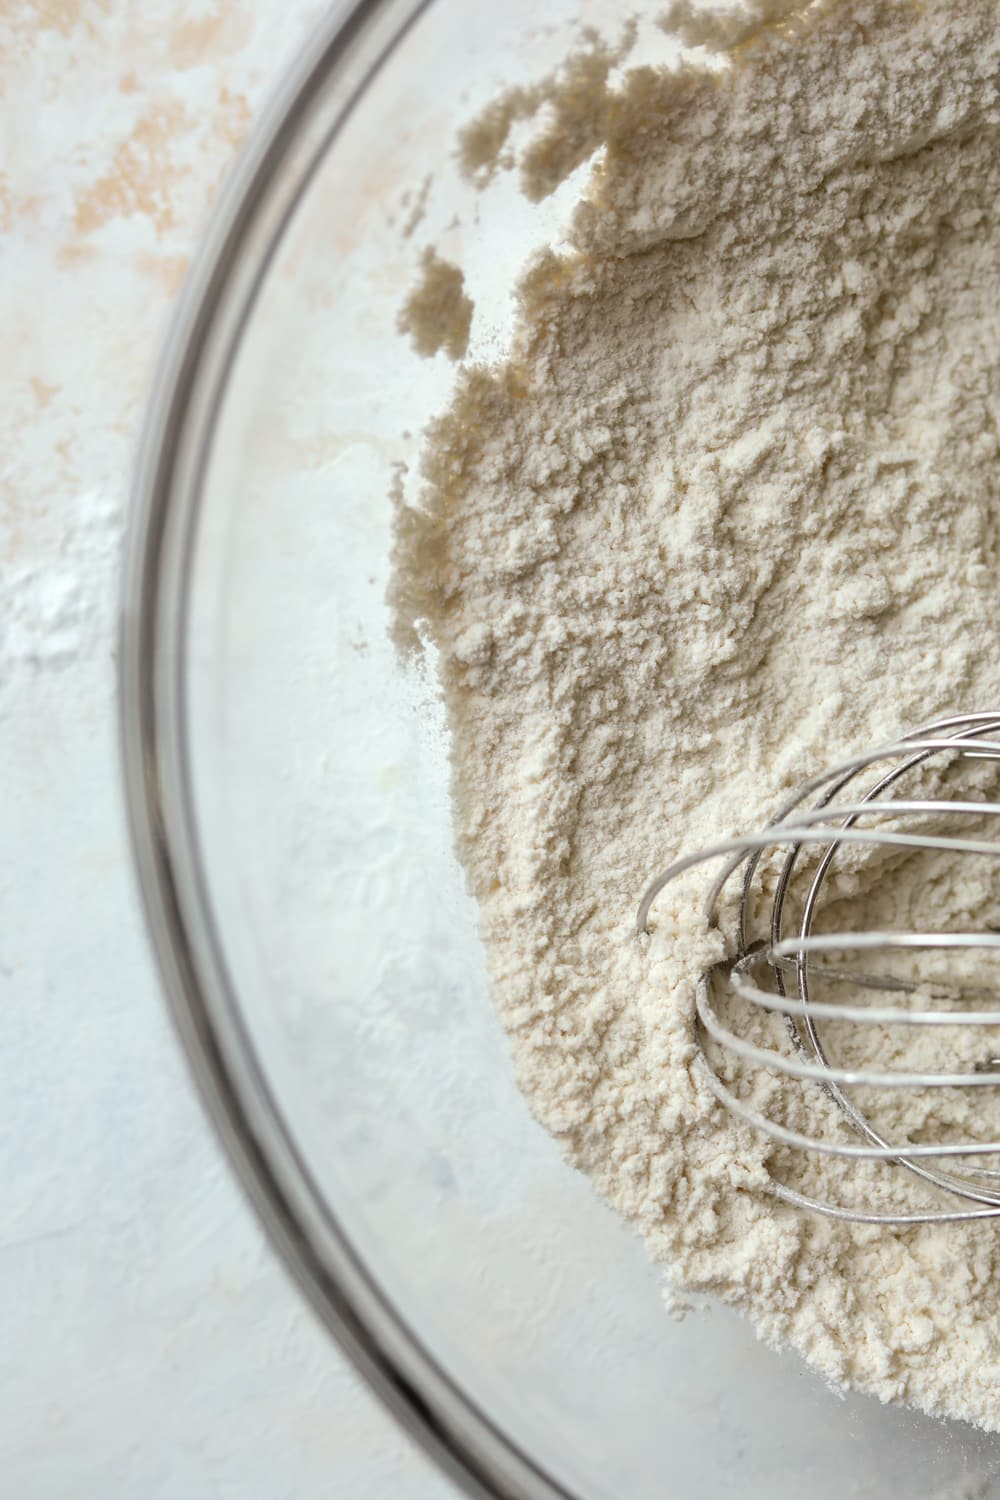 A clear bowl filled with flour and a wire whisk.